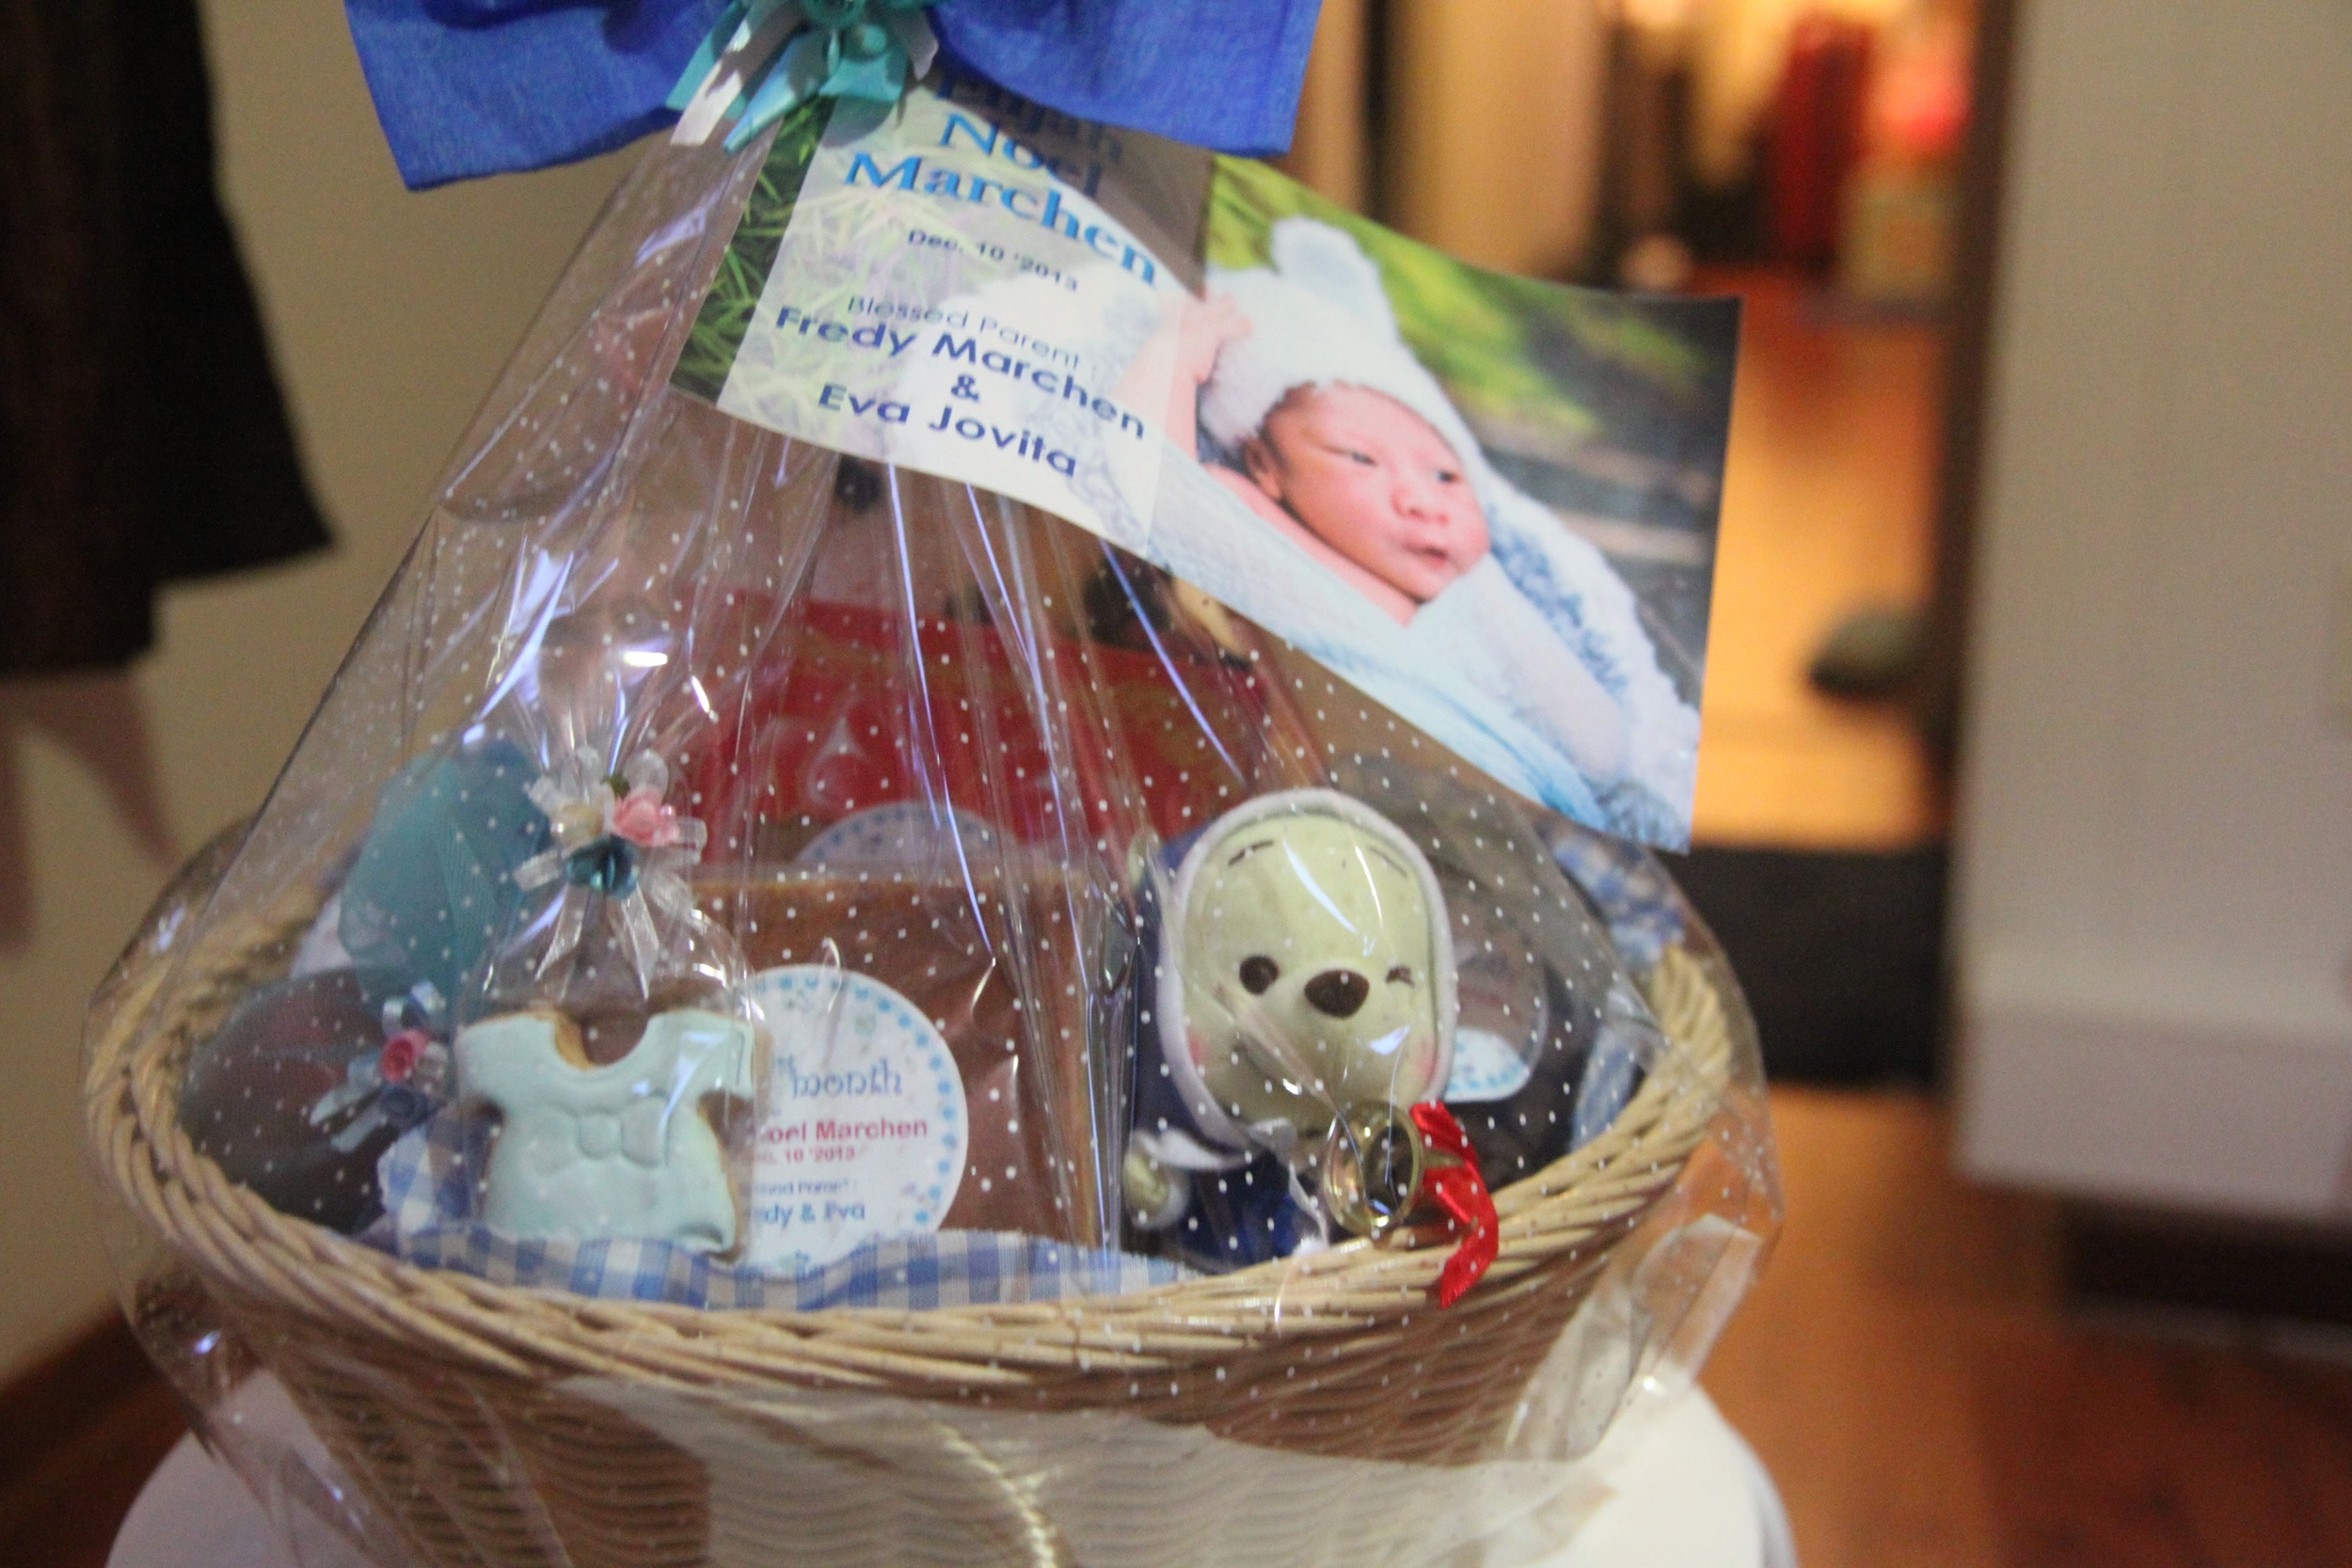 We were making baby hampers for Baby E's full month celebration and delivering them to family and friends.